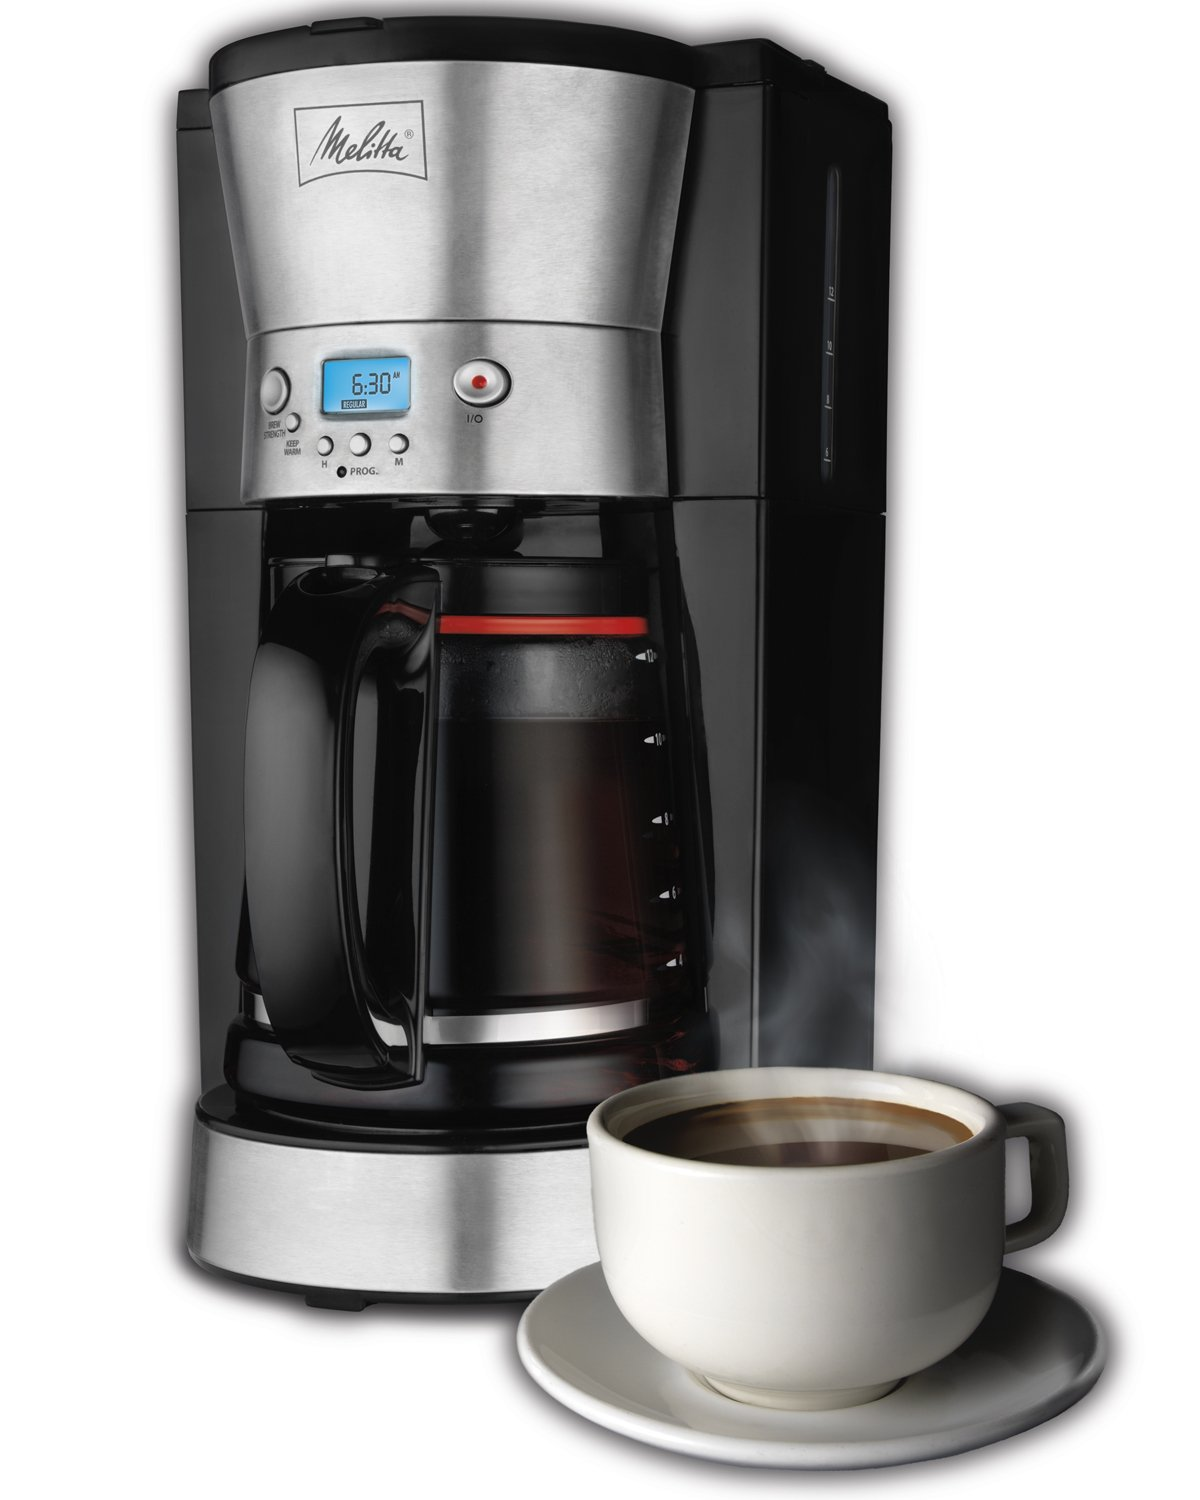 Top Rated Coffee Makers Buying Guide And Reviews newhairstylesformen2014.com